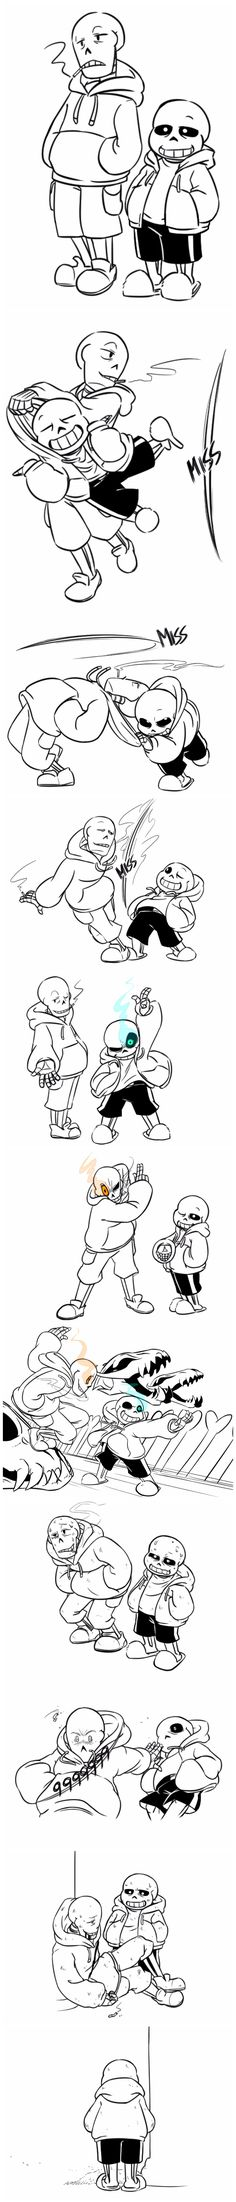 Papyrus and Sans - Underswap AU - comic